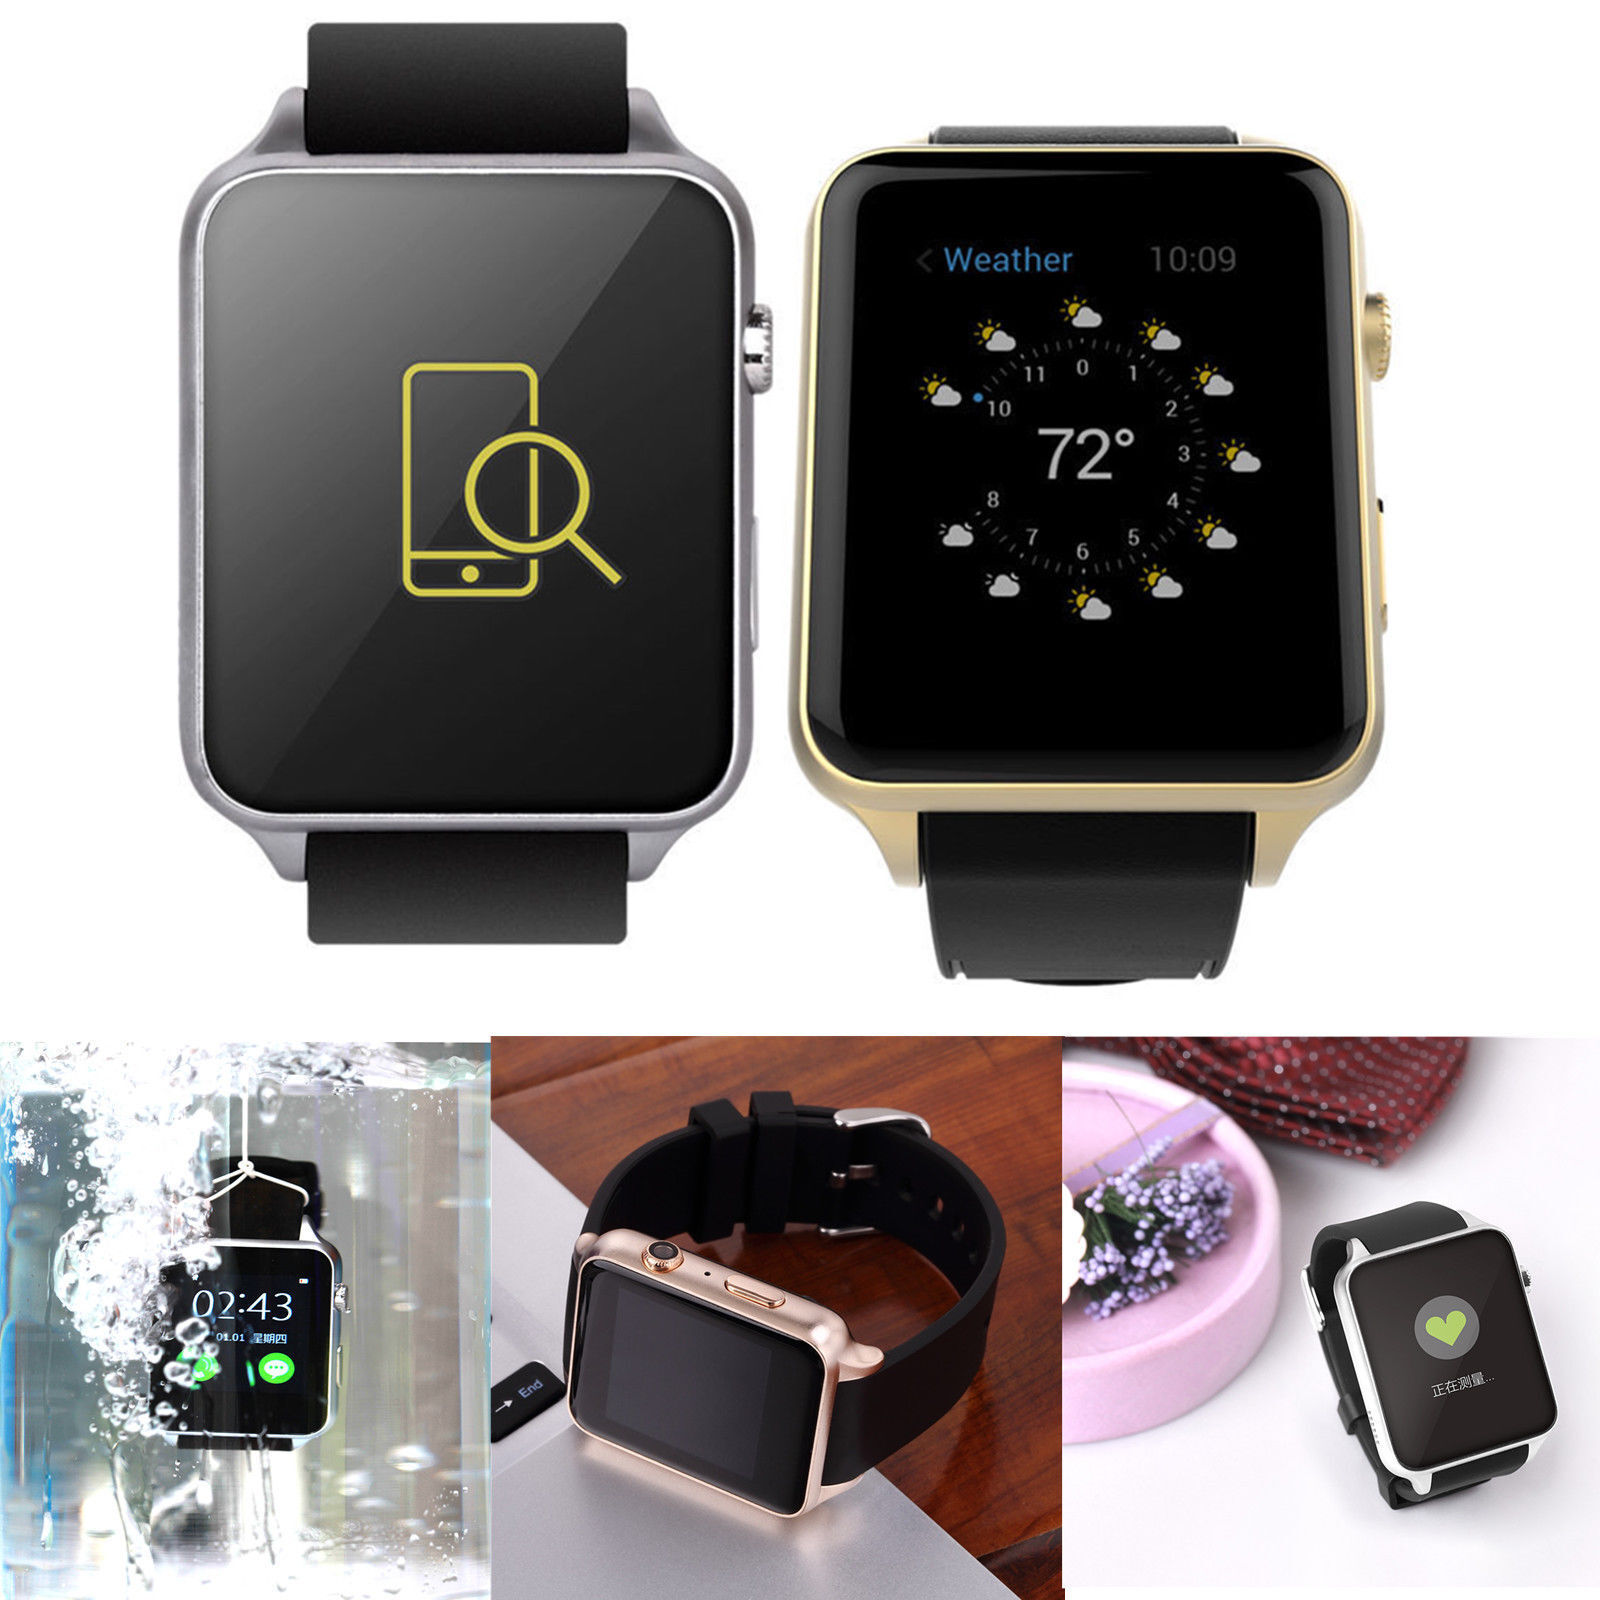 with shenzhen times city japan two offbeat the watch i off their asia salesman knock poses a of news fans f watches on phone apple have pacific look alikes own in china